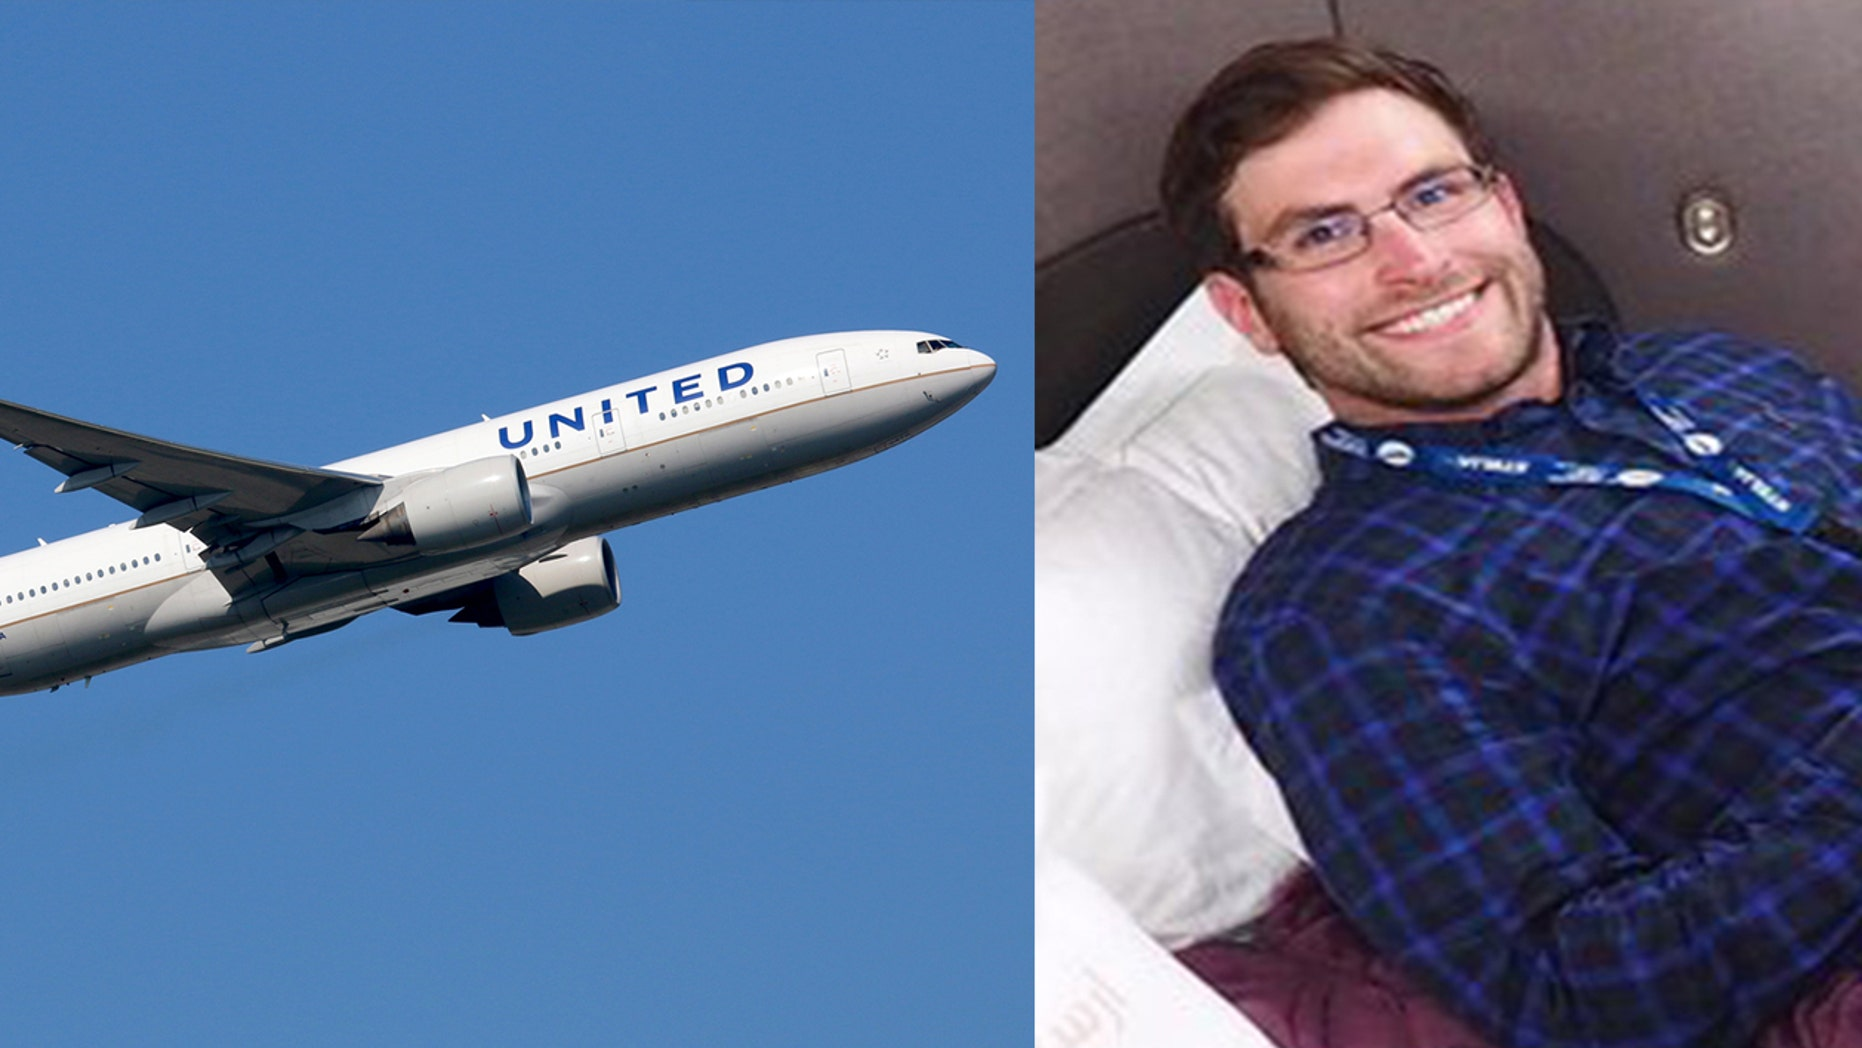 Travel writer Zach Honig took to Twitter to detail the situation.